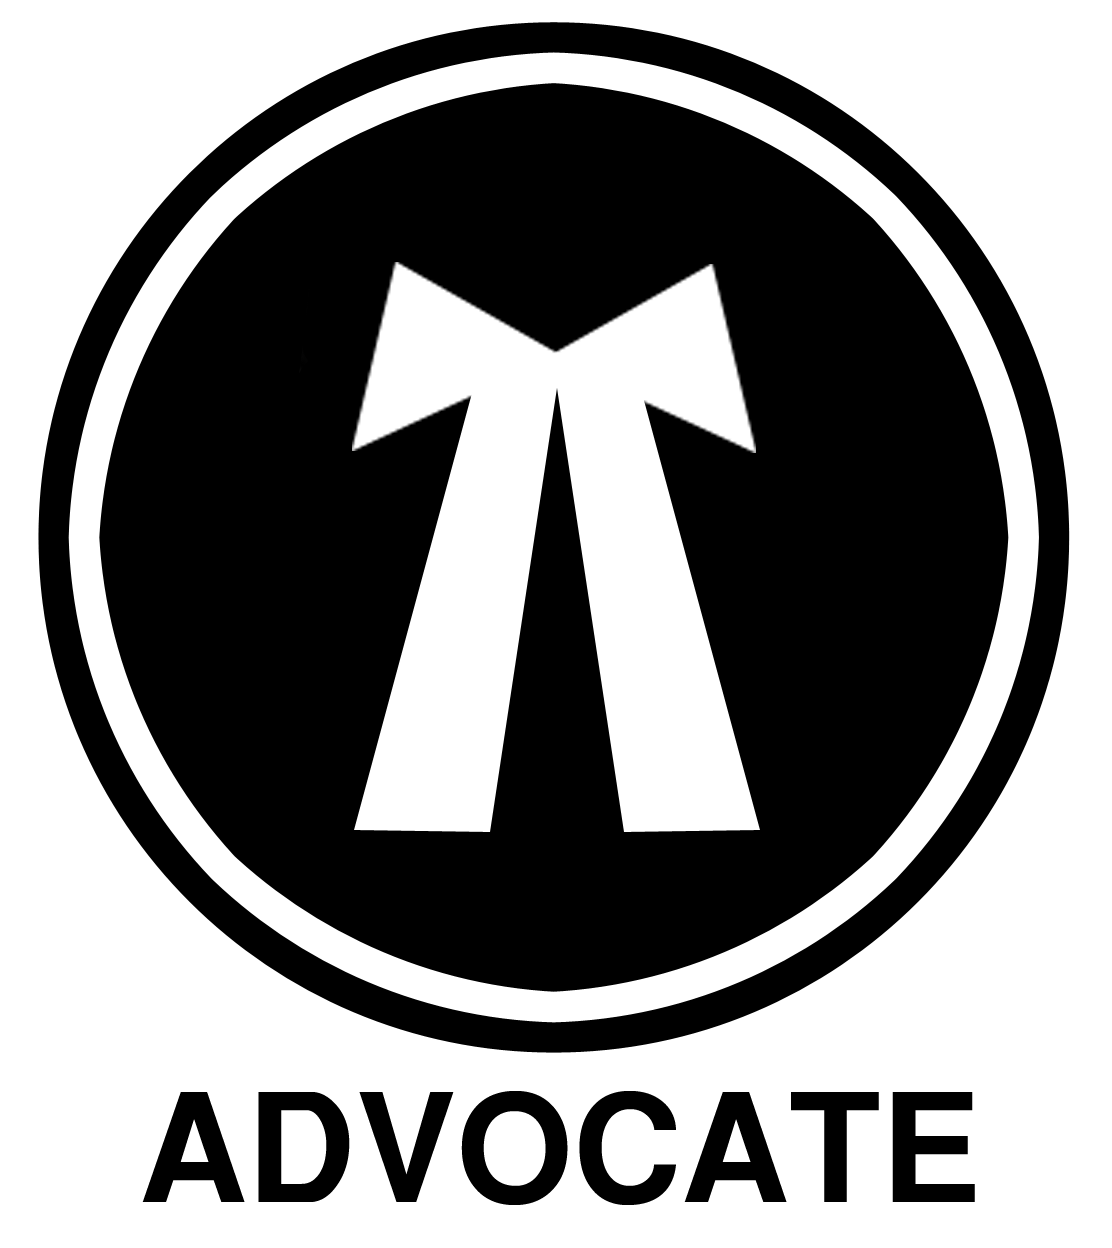 Sean Brown Best Advocate In 2020 Lawyer Logo Good Lawyers Advocate